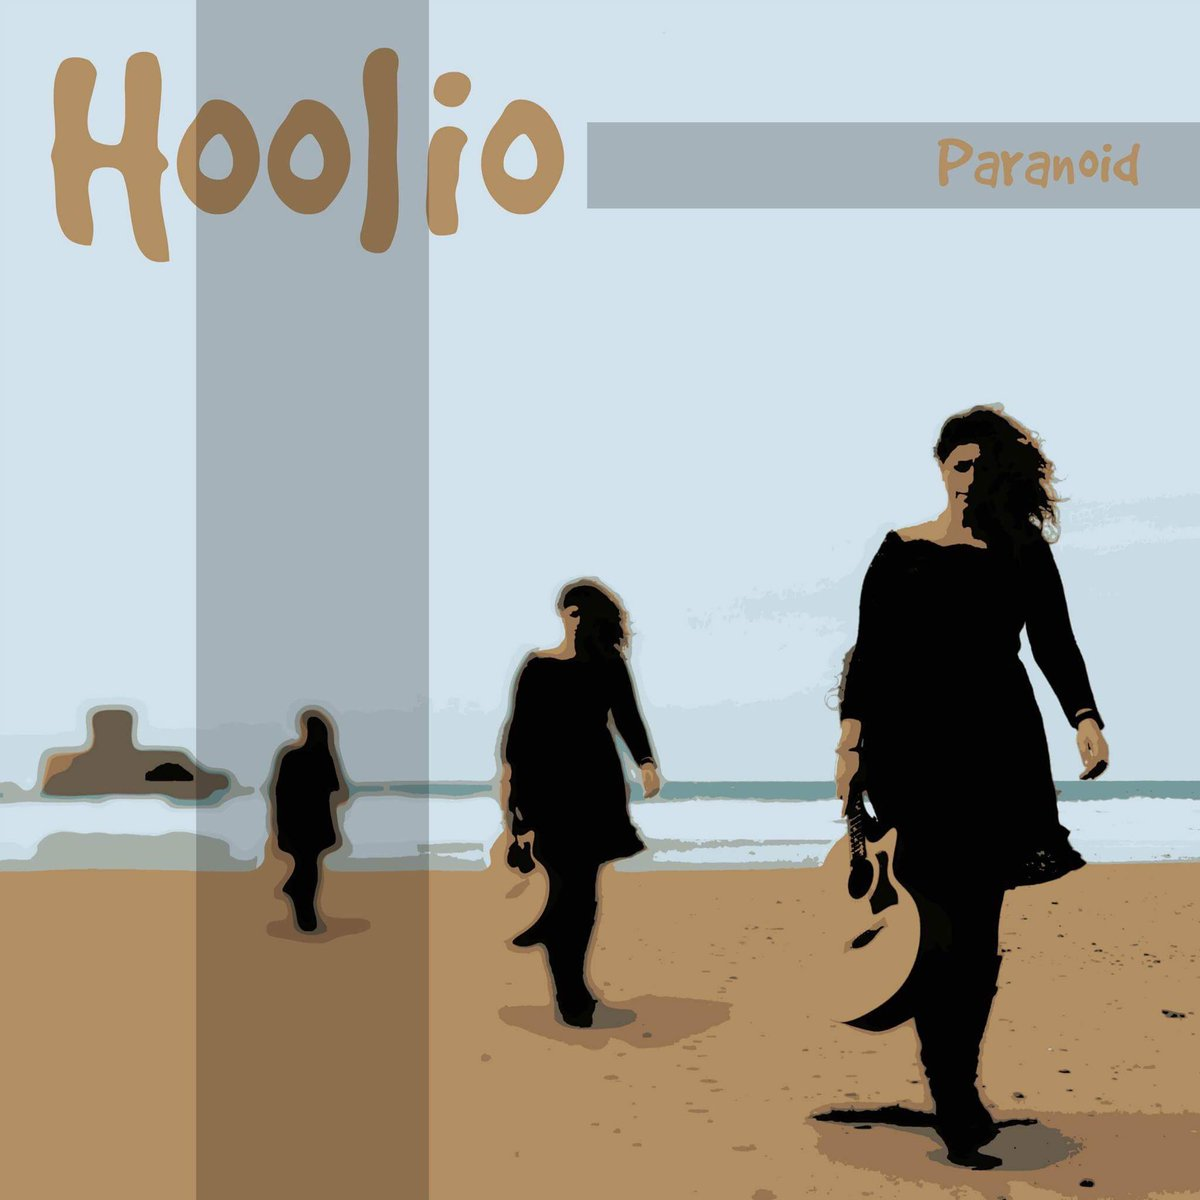 Only 2 weeks until my new single is out! Woop woop! #hoolio #jersey #musicinjersey #newsingle #newmusic #debut   https:// youtu.be/wxITq1ZV0RM  &nbsp;  <br>http://pic.twitter.com/xDdu8UwyoS